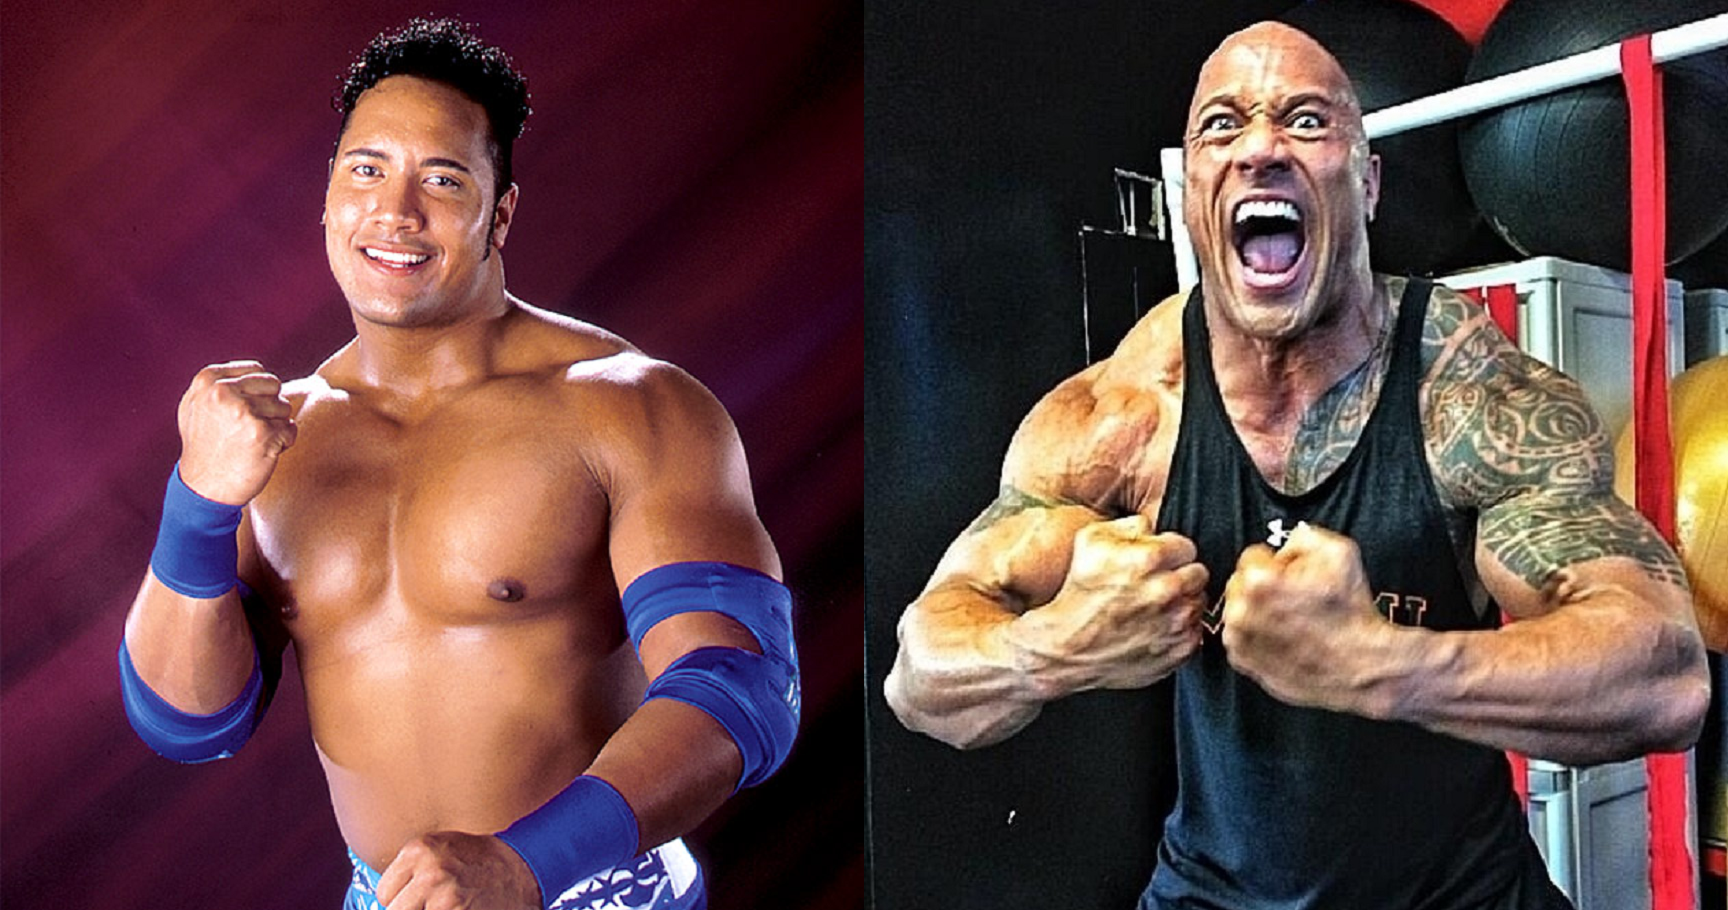 top 15 most extraordinary body transformations in